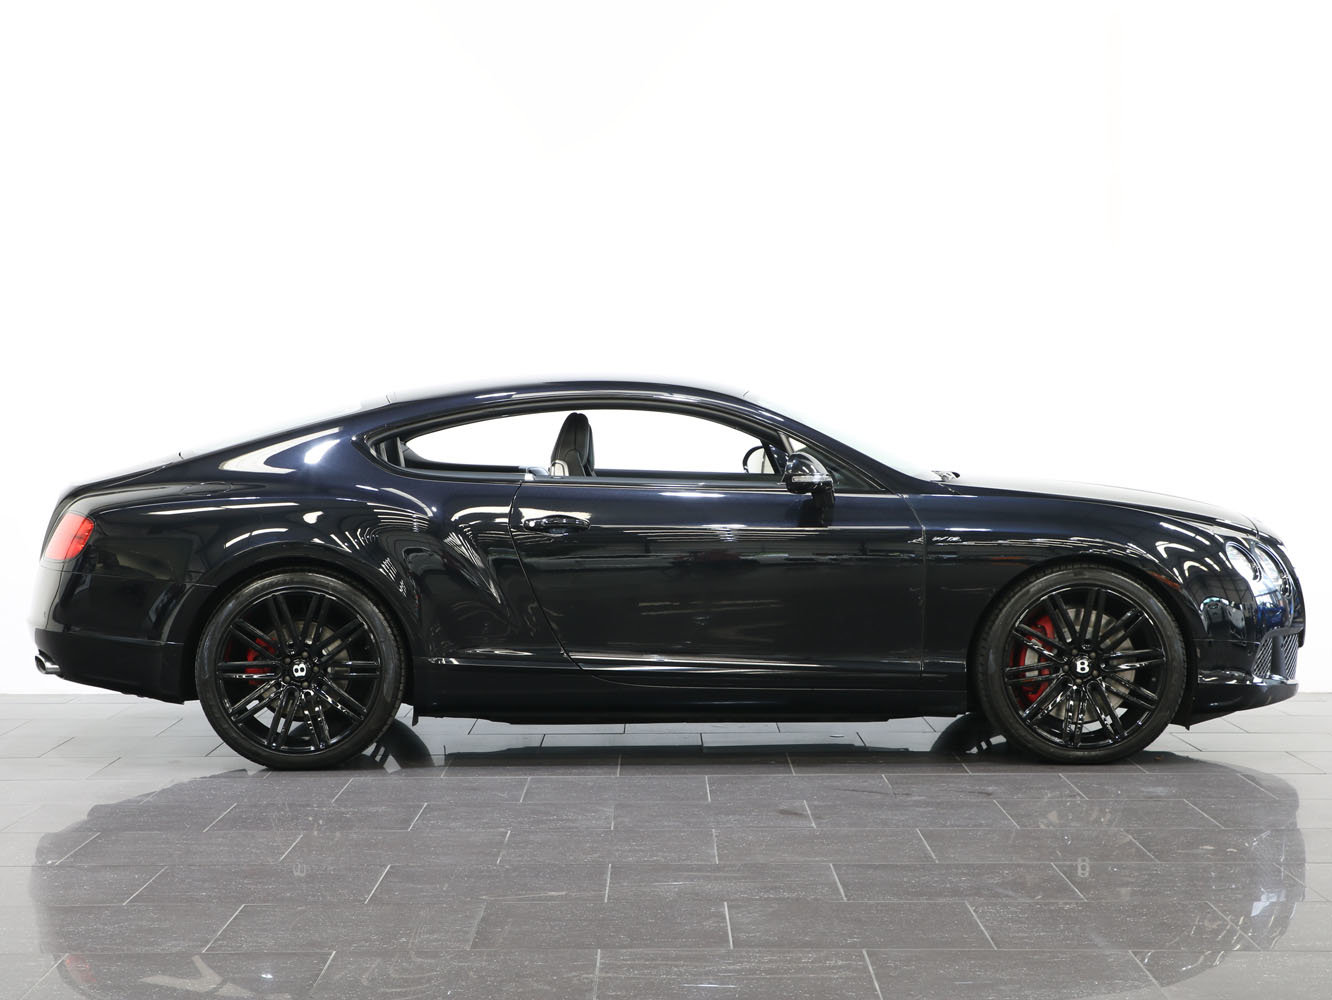 2013 13 13 BENTLEY CONTINENTAL 6.0 W12 GT SPEED AUTO For Sale (picture 2 of 6)